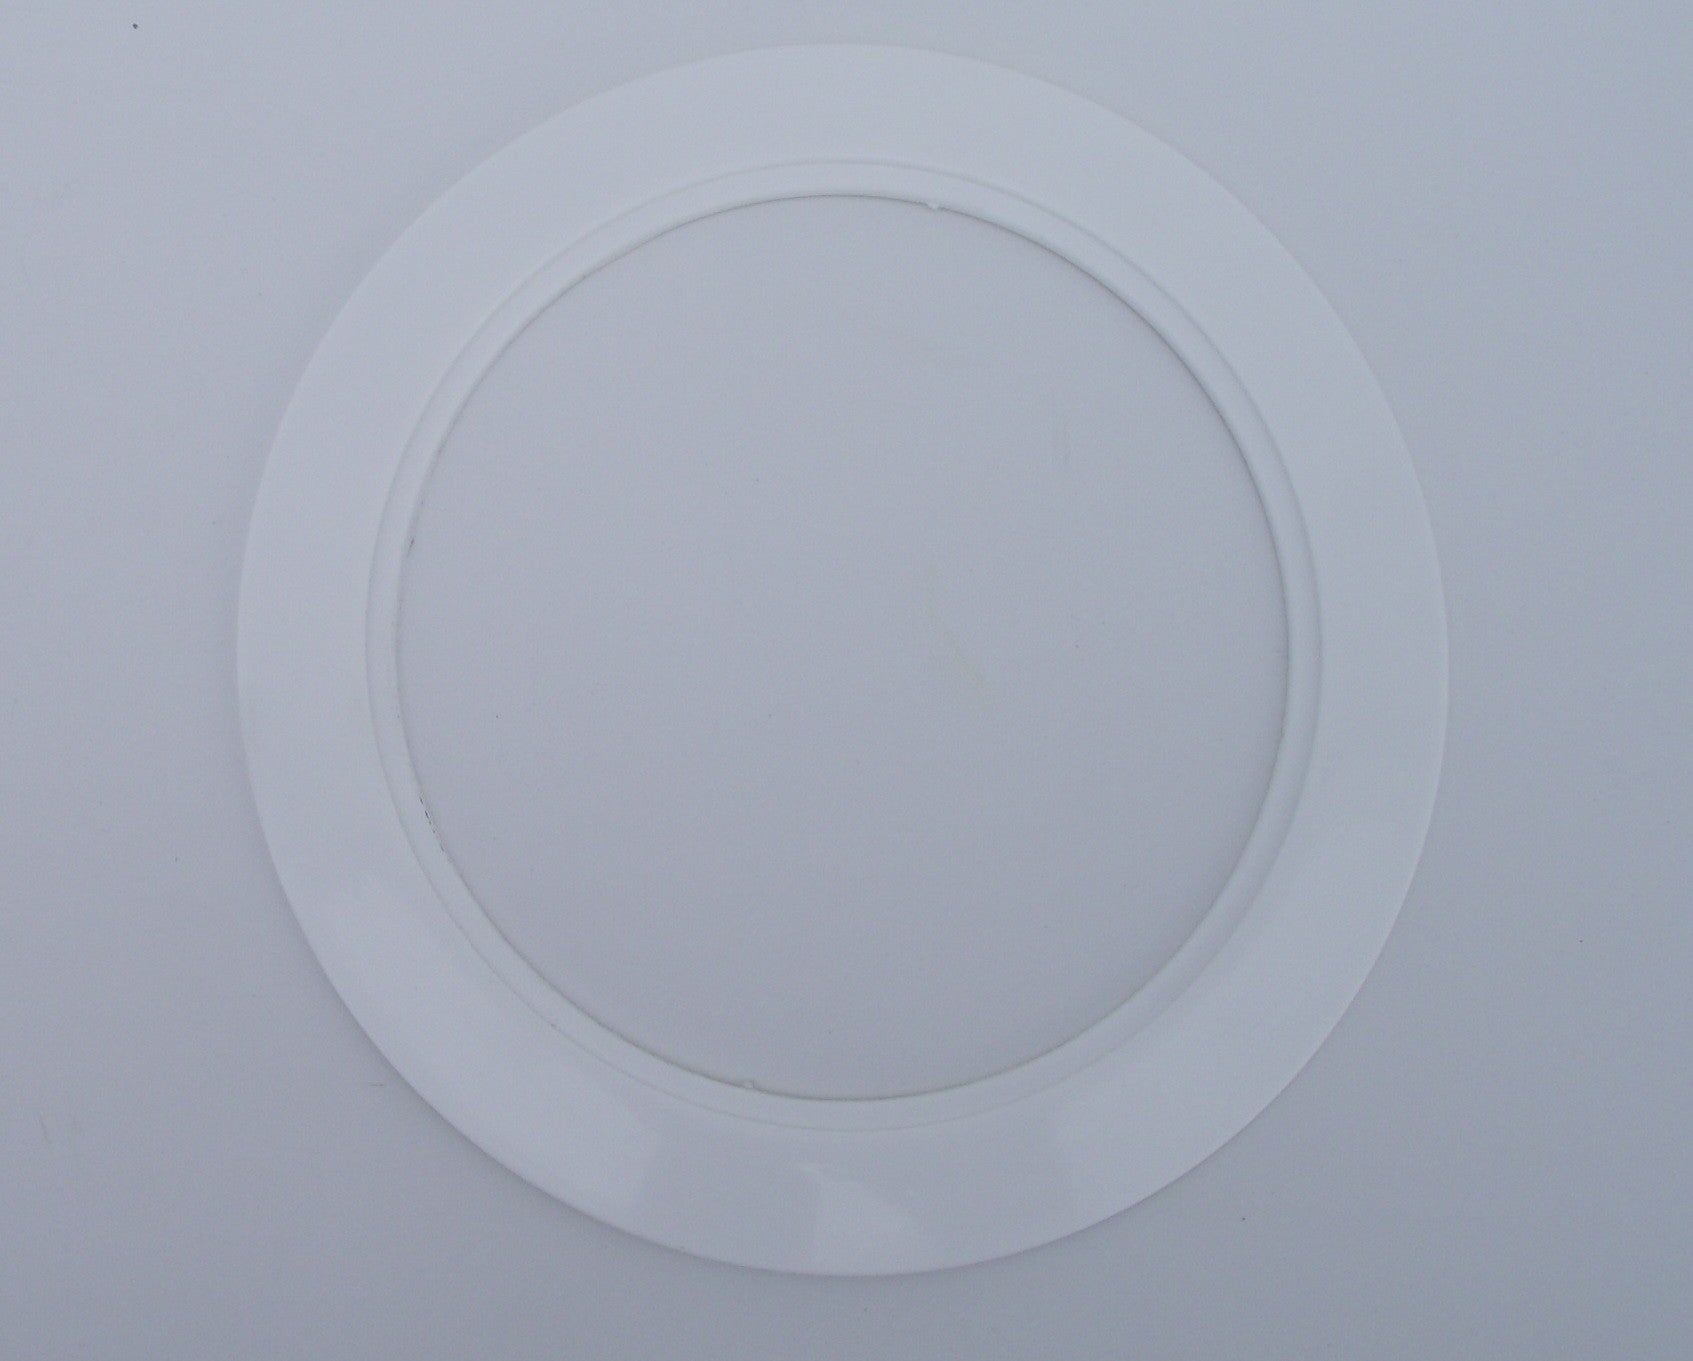 White Light Trim Ring Recessed Can 6 Inch Regular Sized Lighting Fixt Jsp Manufacturing